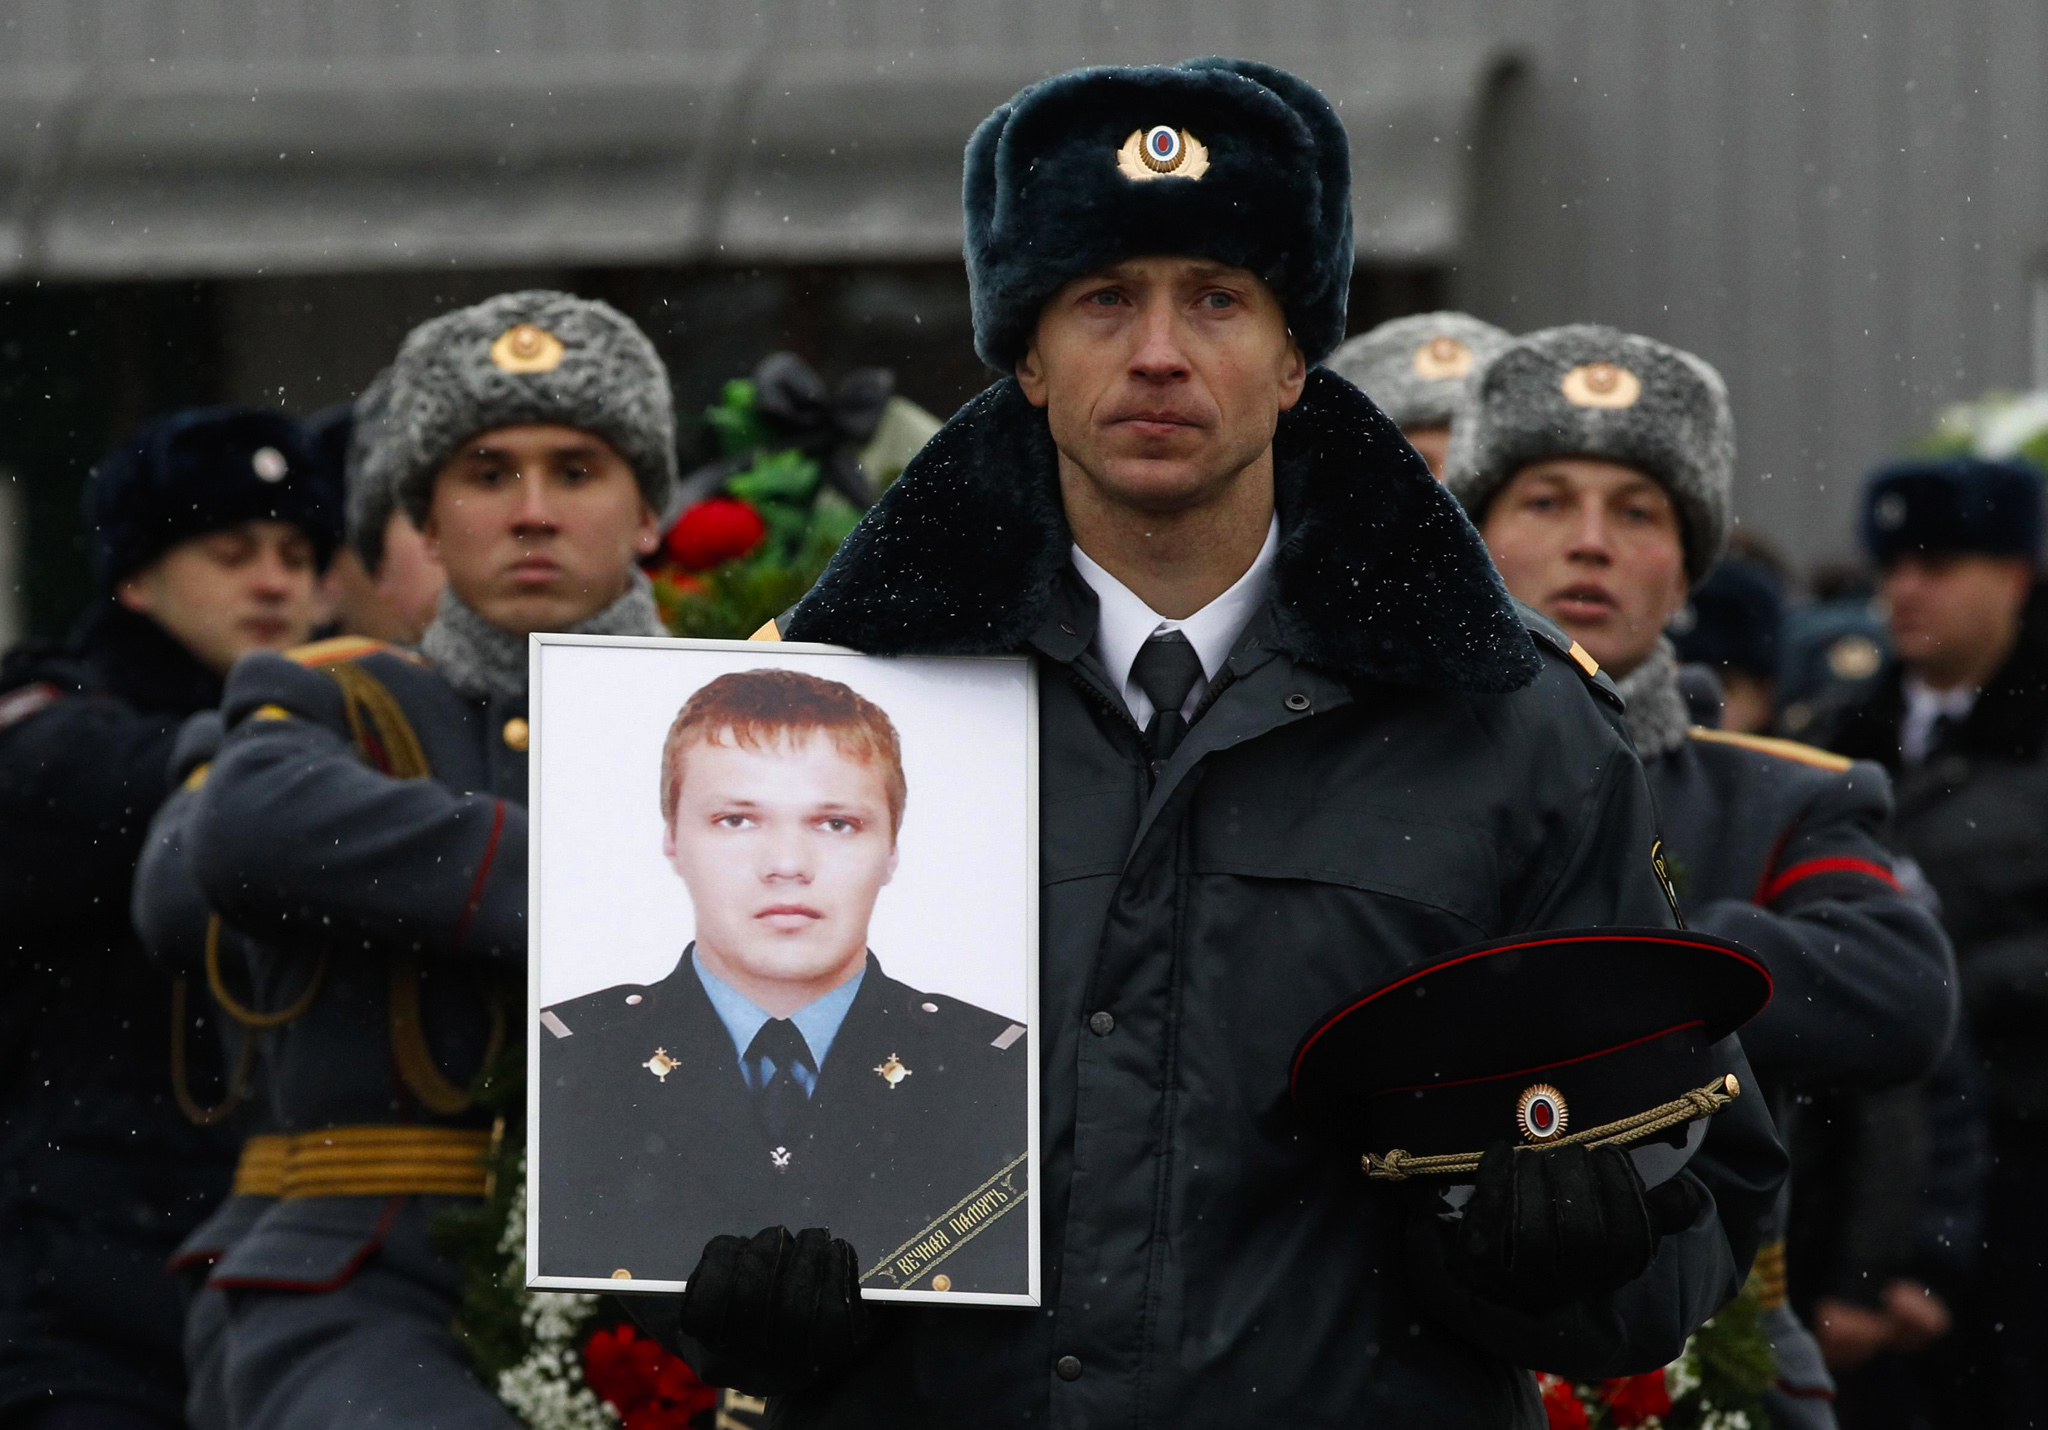 A police officer carries a portrait of Russian police senior sergeant Dmitry Makovkin, who was killed by a suicide bomb blast in Volgograd's main railway station, in front of the funeral procession carrying Makovkin's coffin.